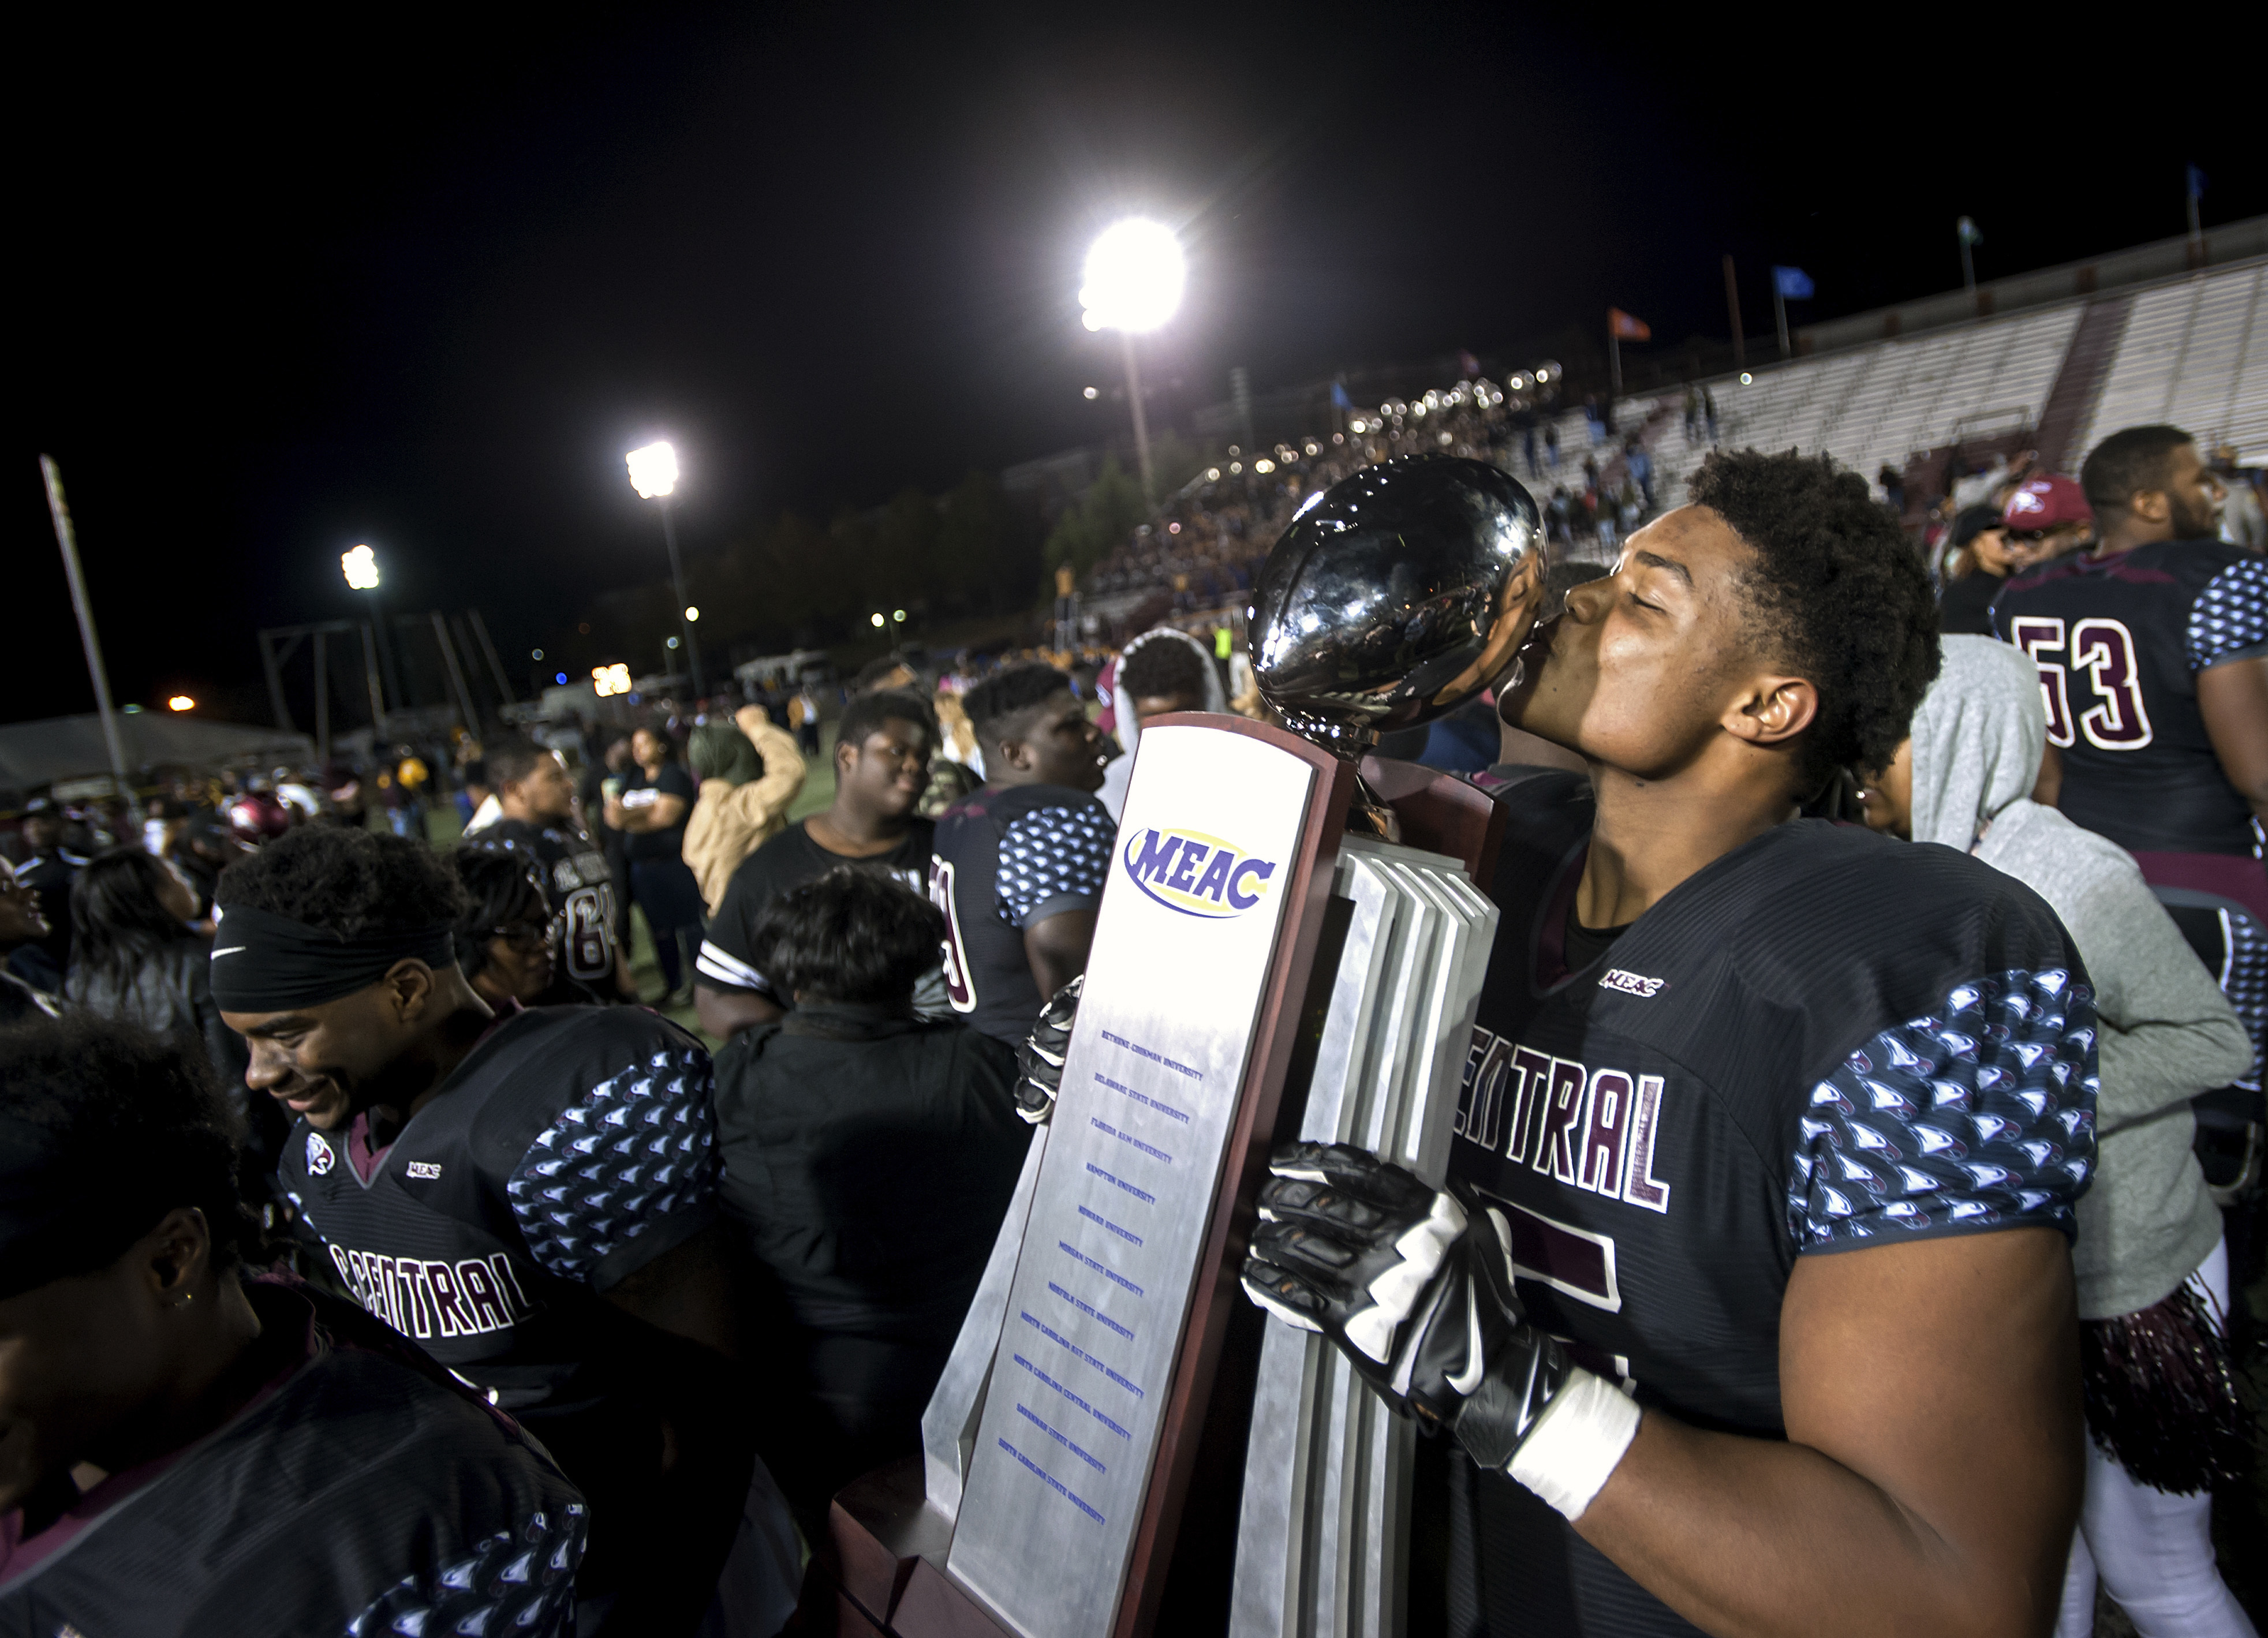 FILE - In this Nov. 19, 2016, file photo, North Carolina Central's Nick Leverett kisses the Mid-Eastern Athletic Conference (MEAC) championship trophy after the team's NCAA college football game against North Carolina A&T in Durham, N.C. North Carolina Ce